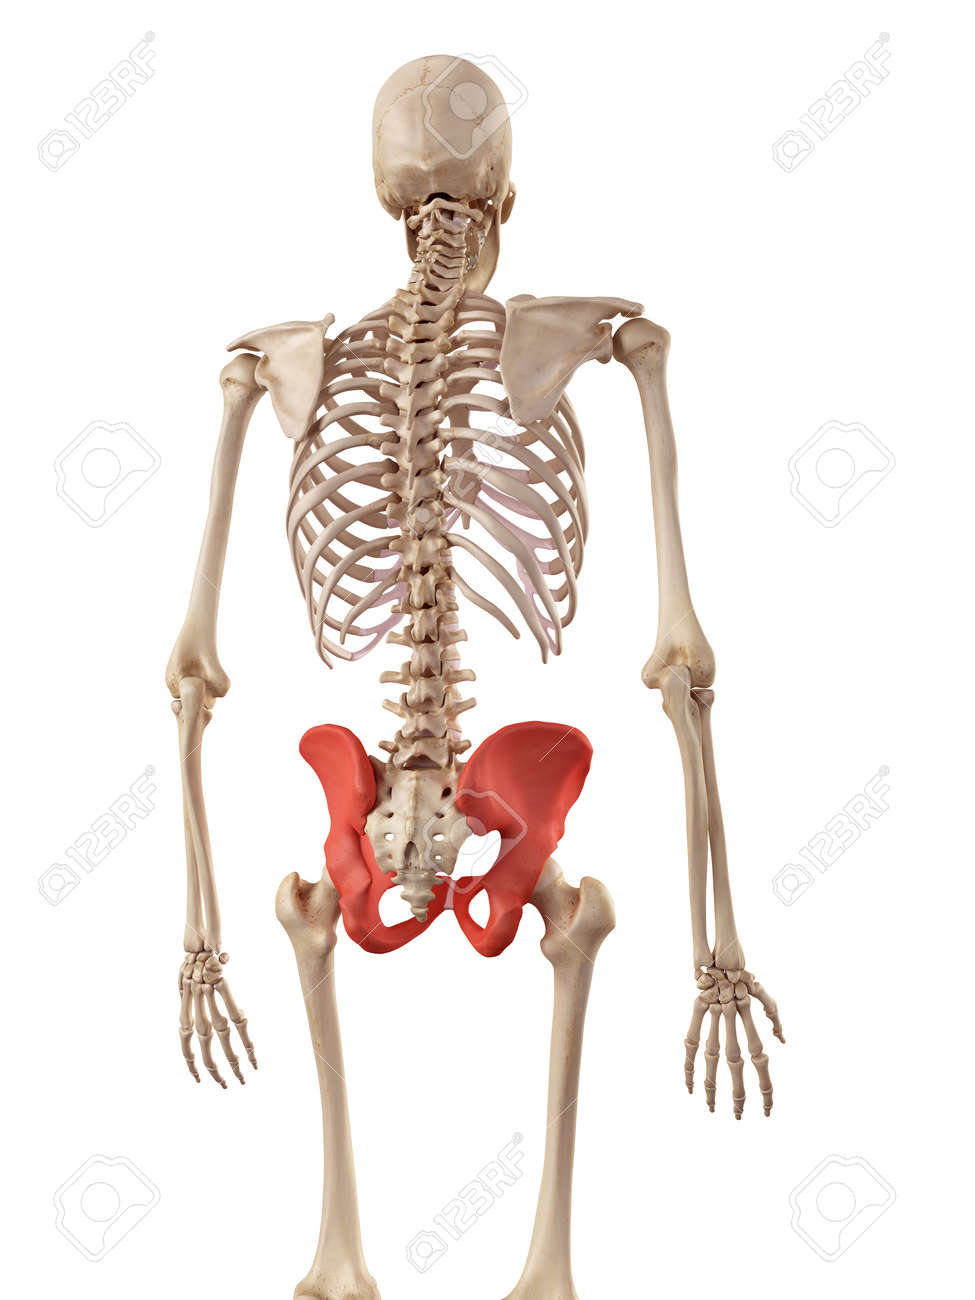 Medical Accurate Illustration Of The Hip Bone Stock Photo Picture